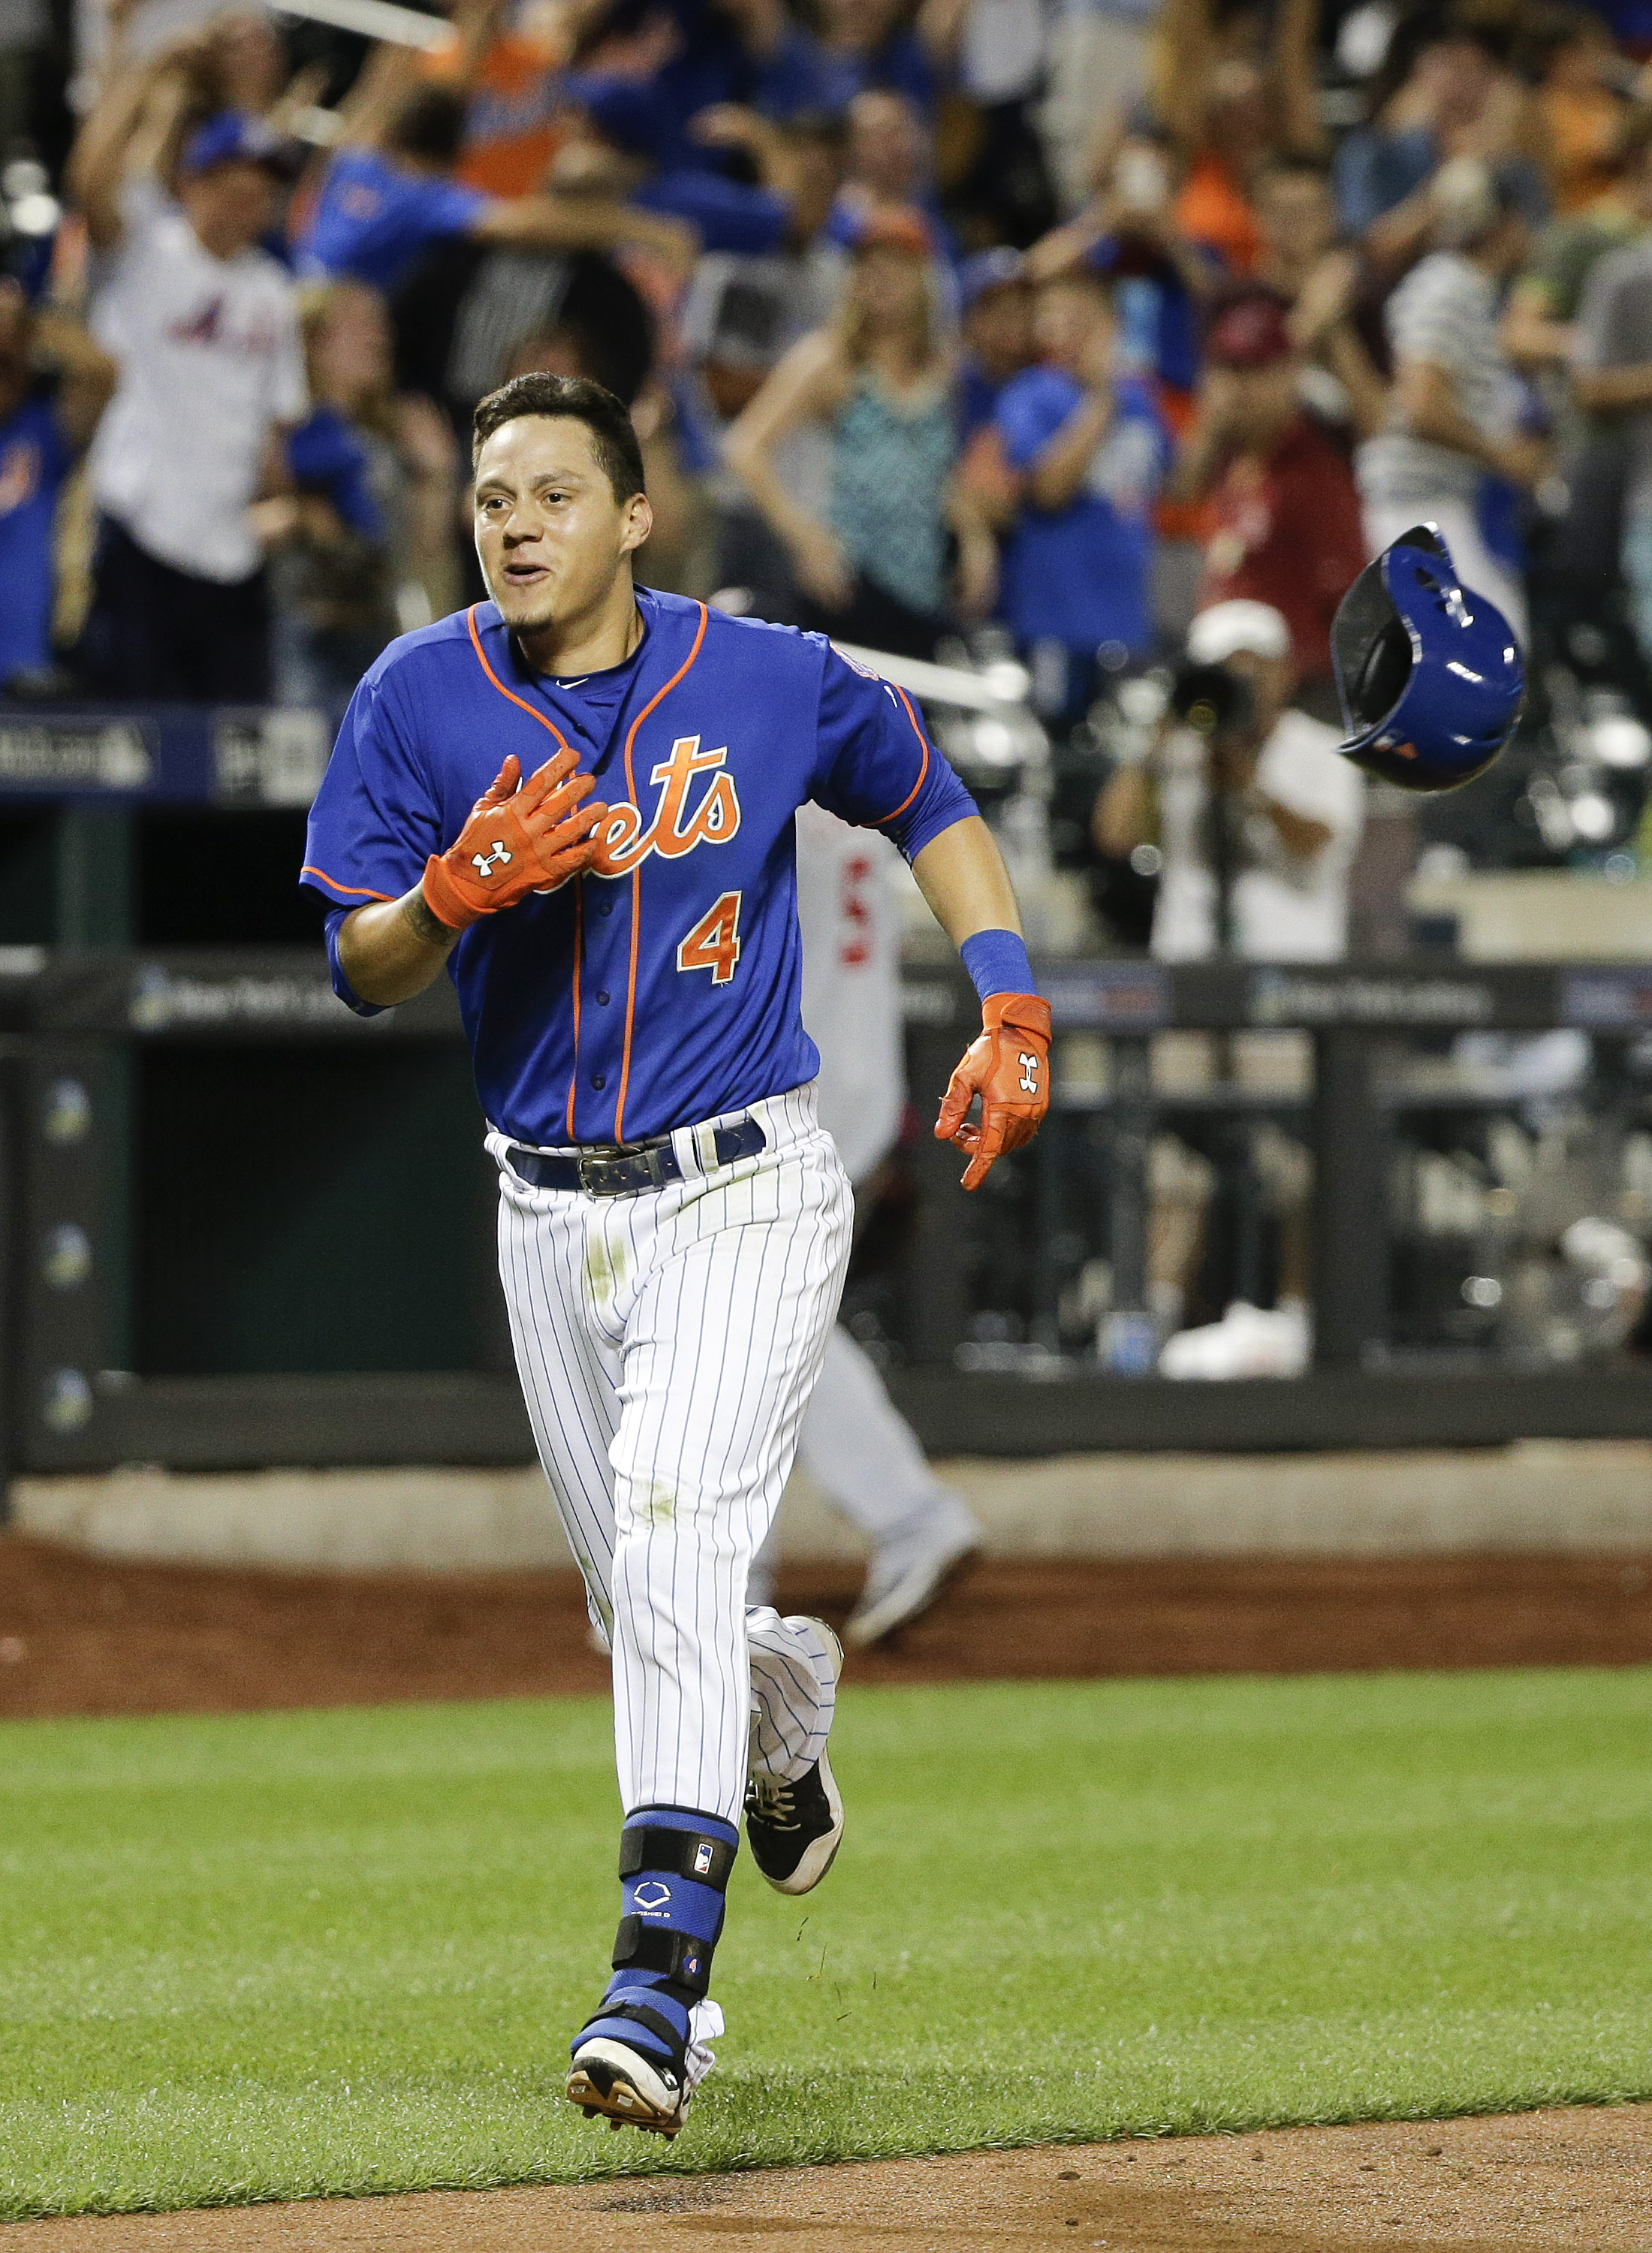 New York Mets' Wilmer Flores (4) tosses his helmet aside as he heads for home after hitting a walk off solo home run during the twelfth inning of a baseball game to beat the Washington Nationals 2-1, Friday, July 31, 2015, in New York. (AP Photo/Julie Jac